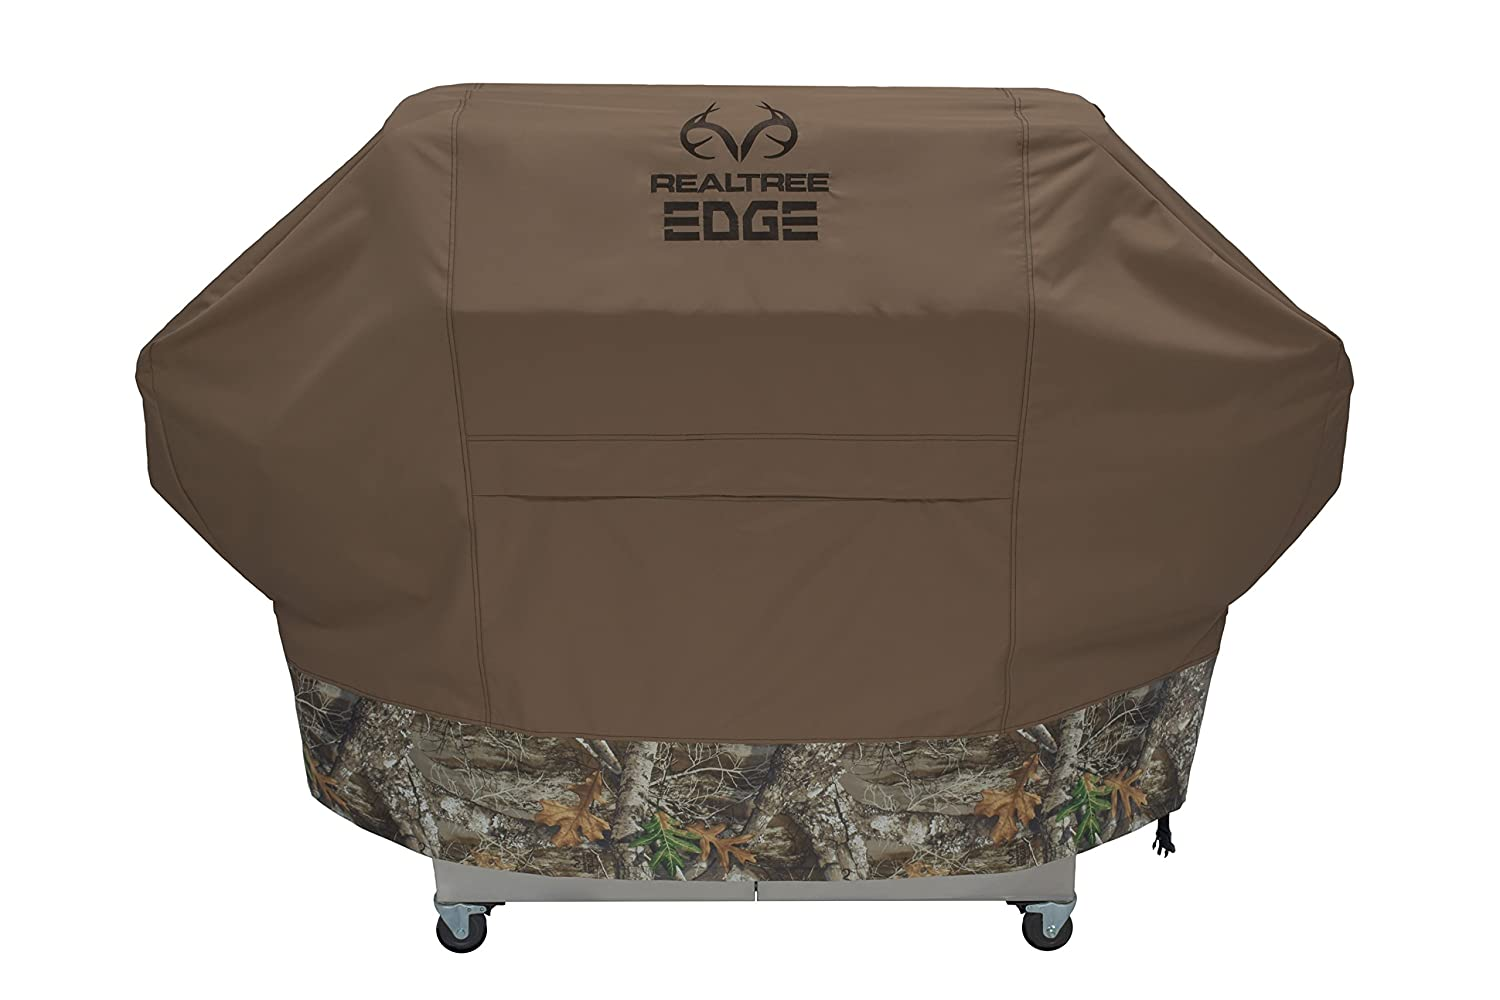 Realtree Edge Gas Grill Cover, Durable and Water Resistant, Medium/52 inches